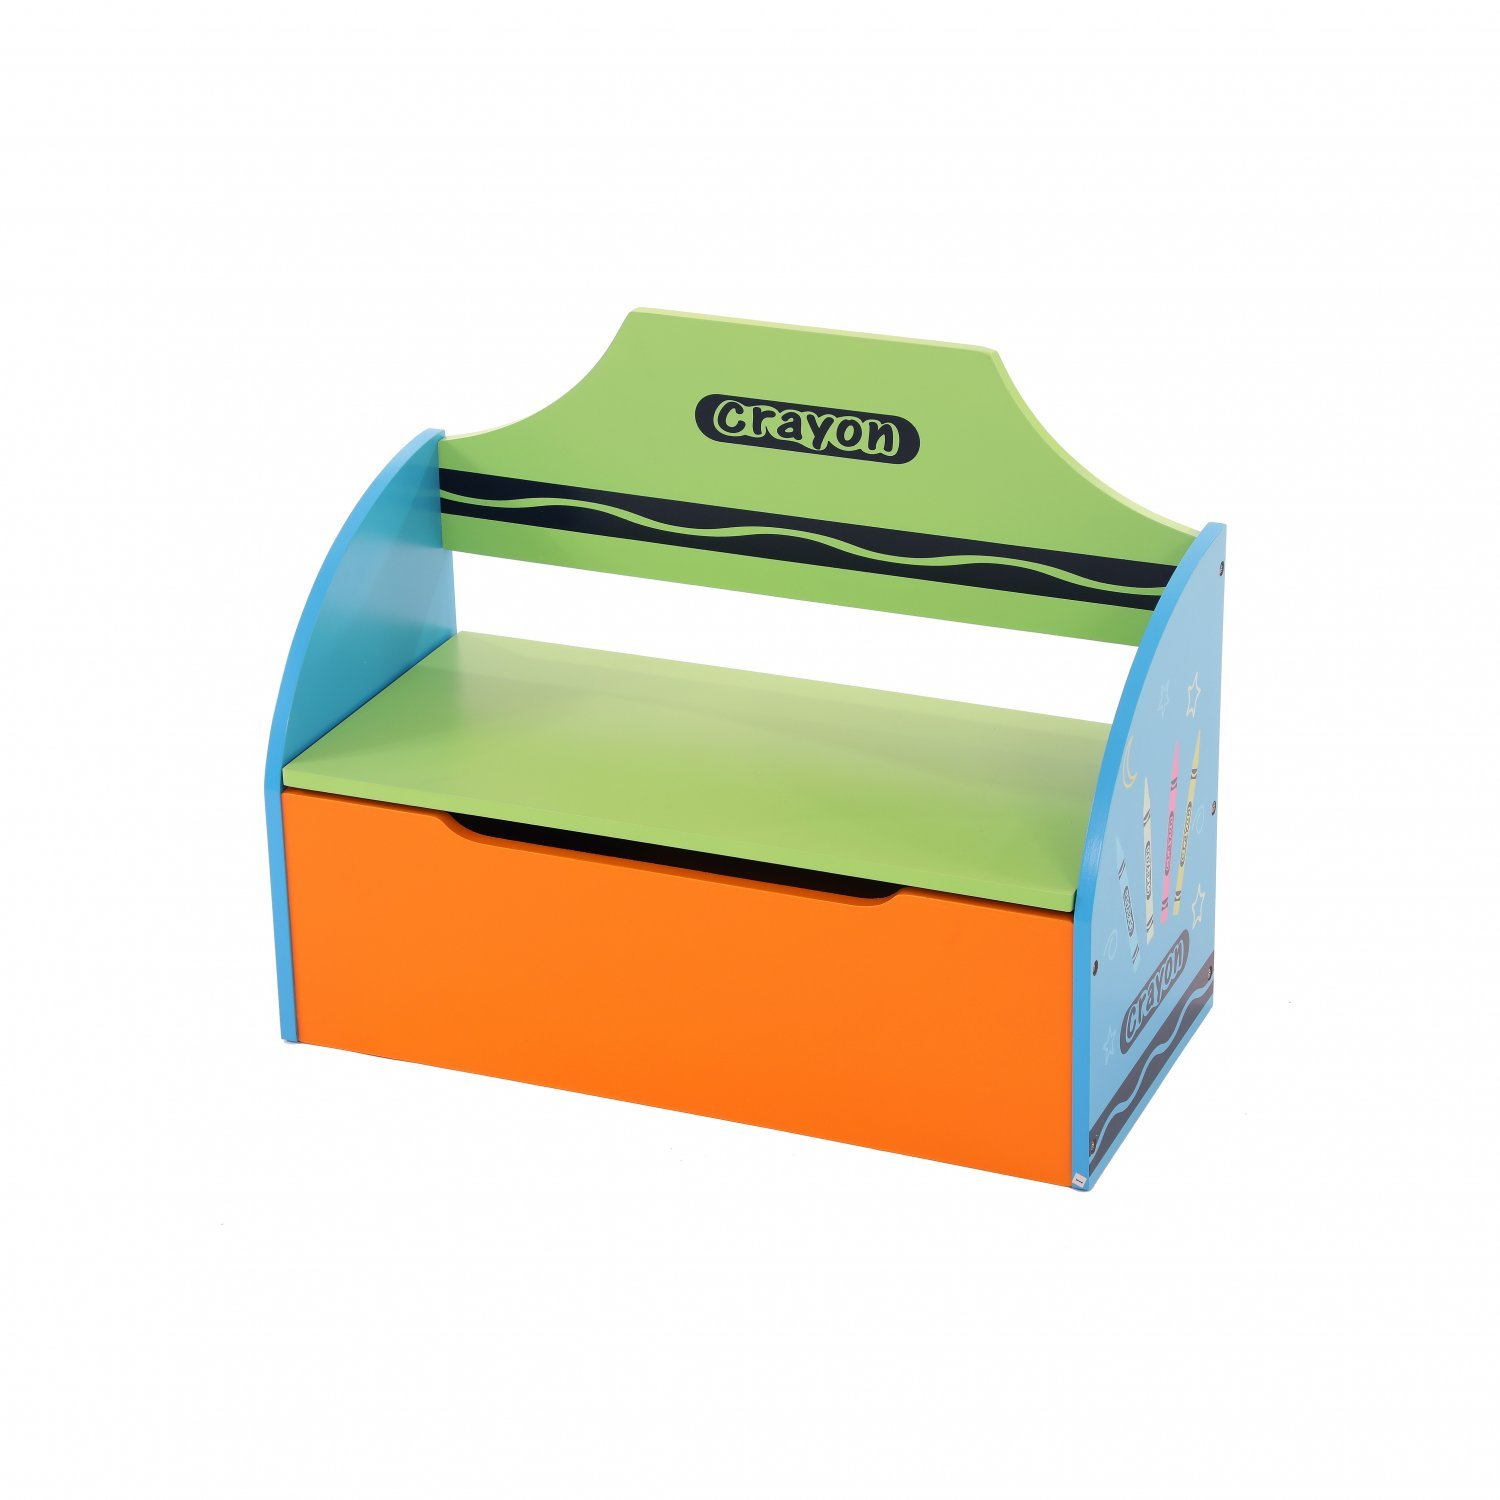 Childrens Wooden Crayon Toy Storage Unit Box Bench 24 99 Oypla Stocking The Very Best In Toys Electrical Furniture Homeware Garden Gifts And Much More